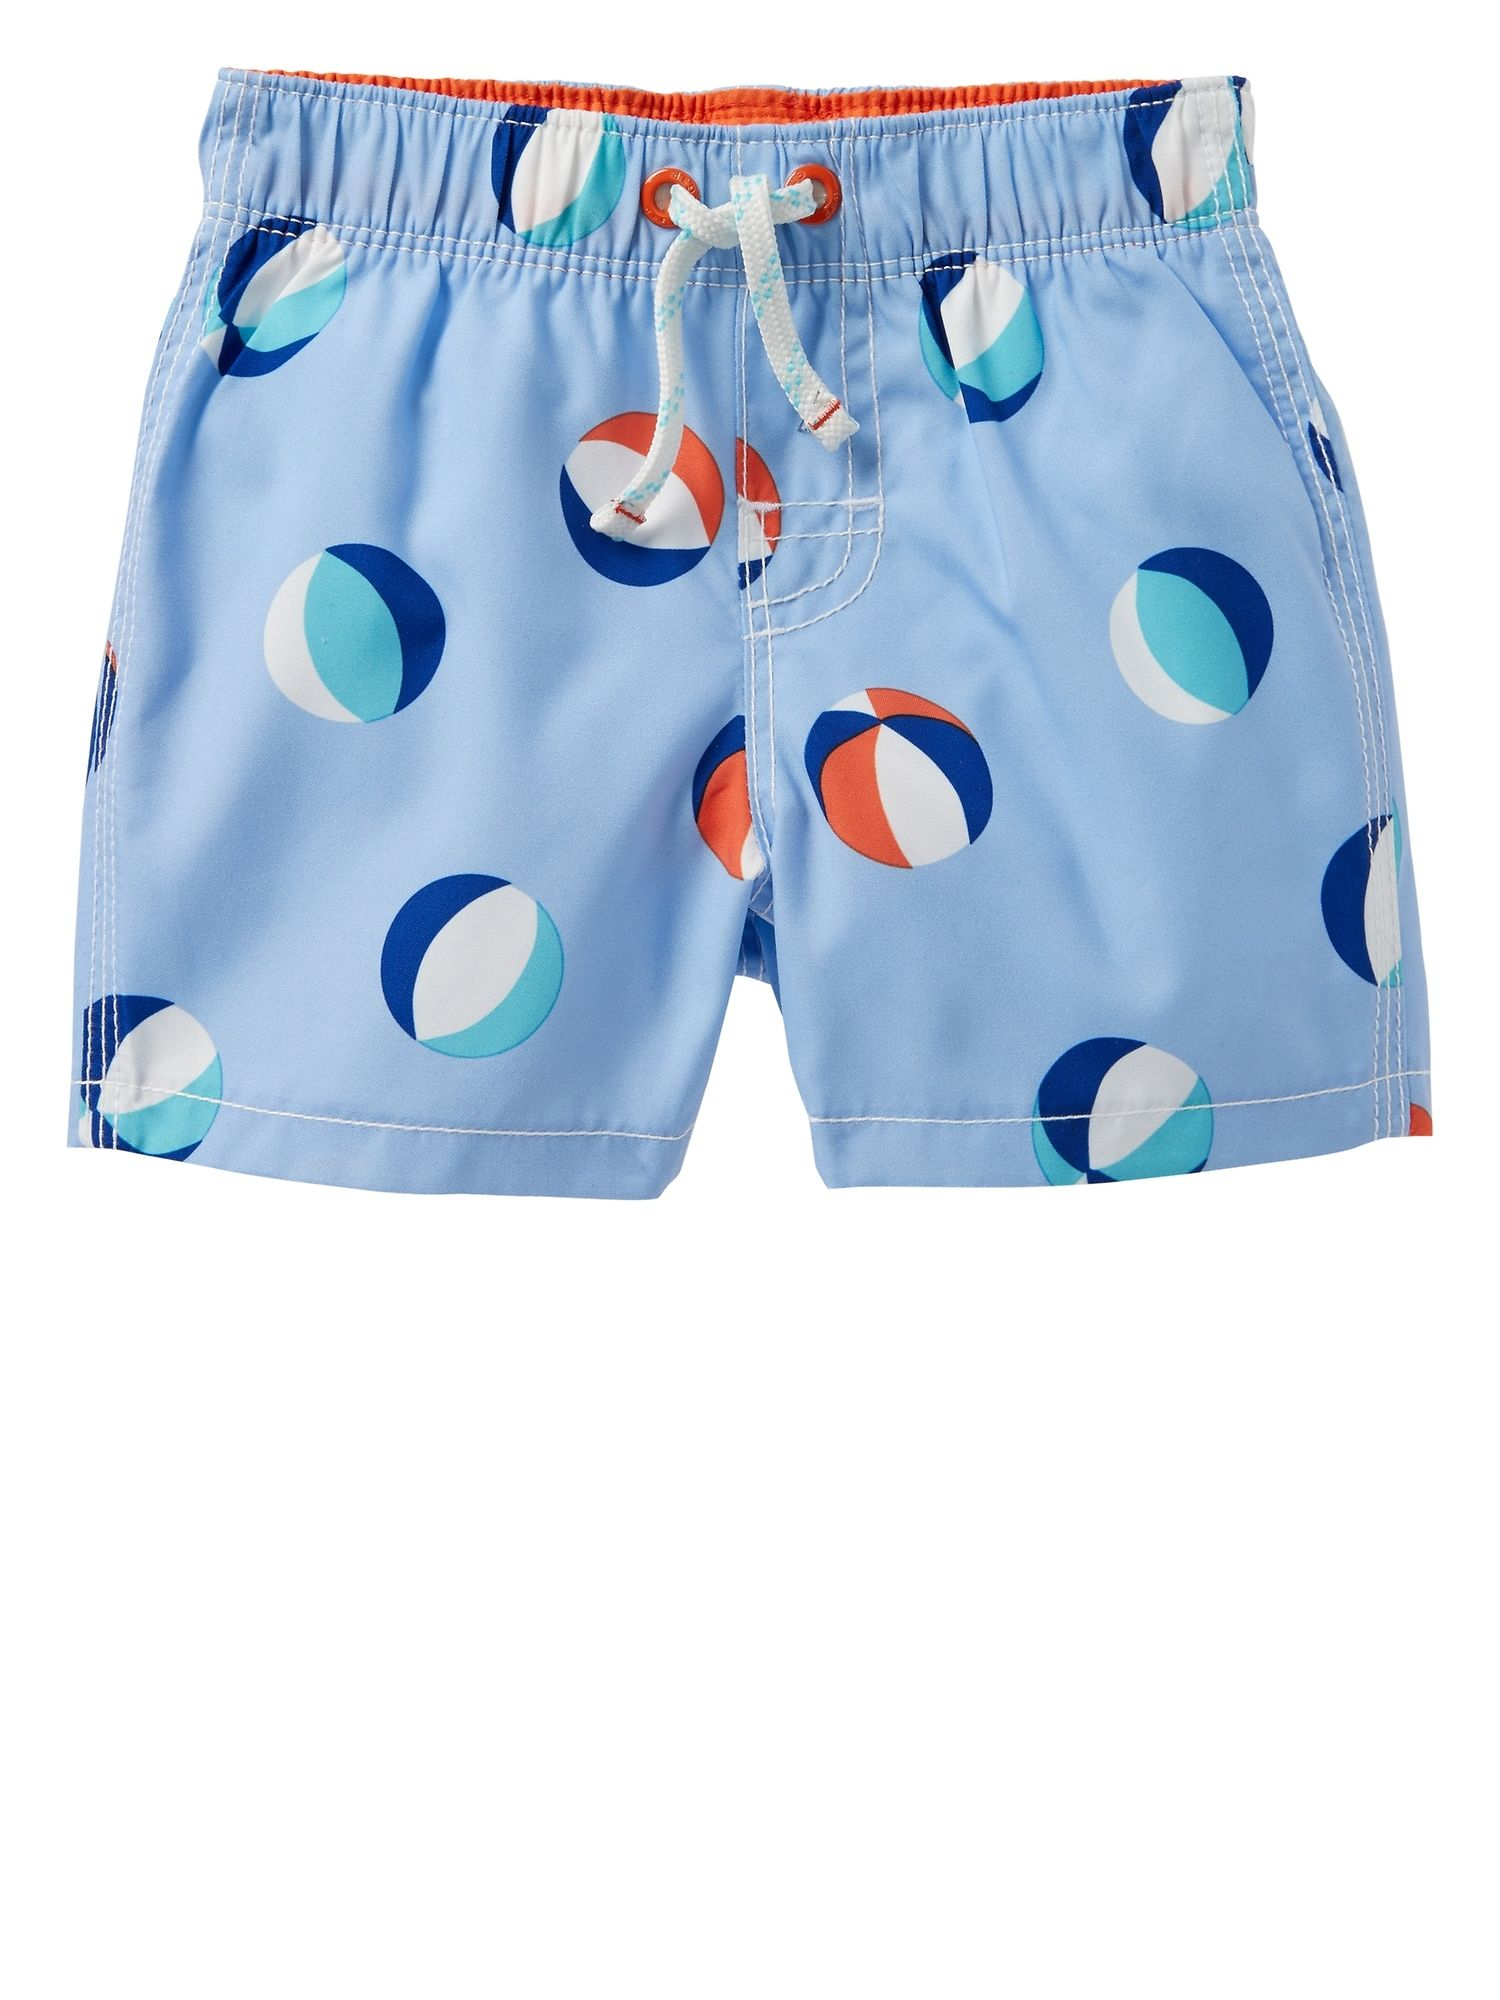 12199b78dd14 Beach Ball Swim Trunks | Gap Factory $10.99. Find this Pin and more on Swim  2018 - Baby + Toddler Boy ...